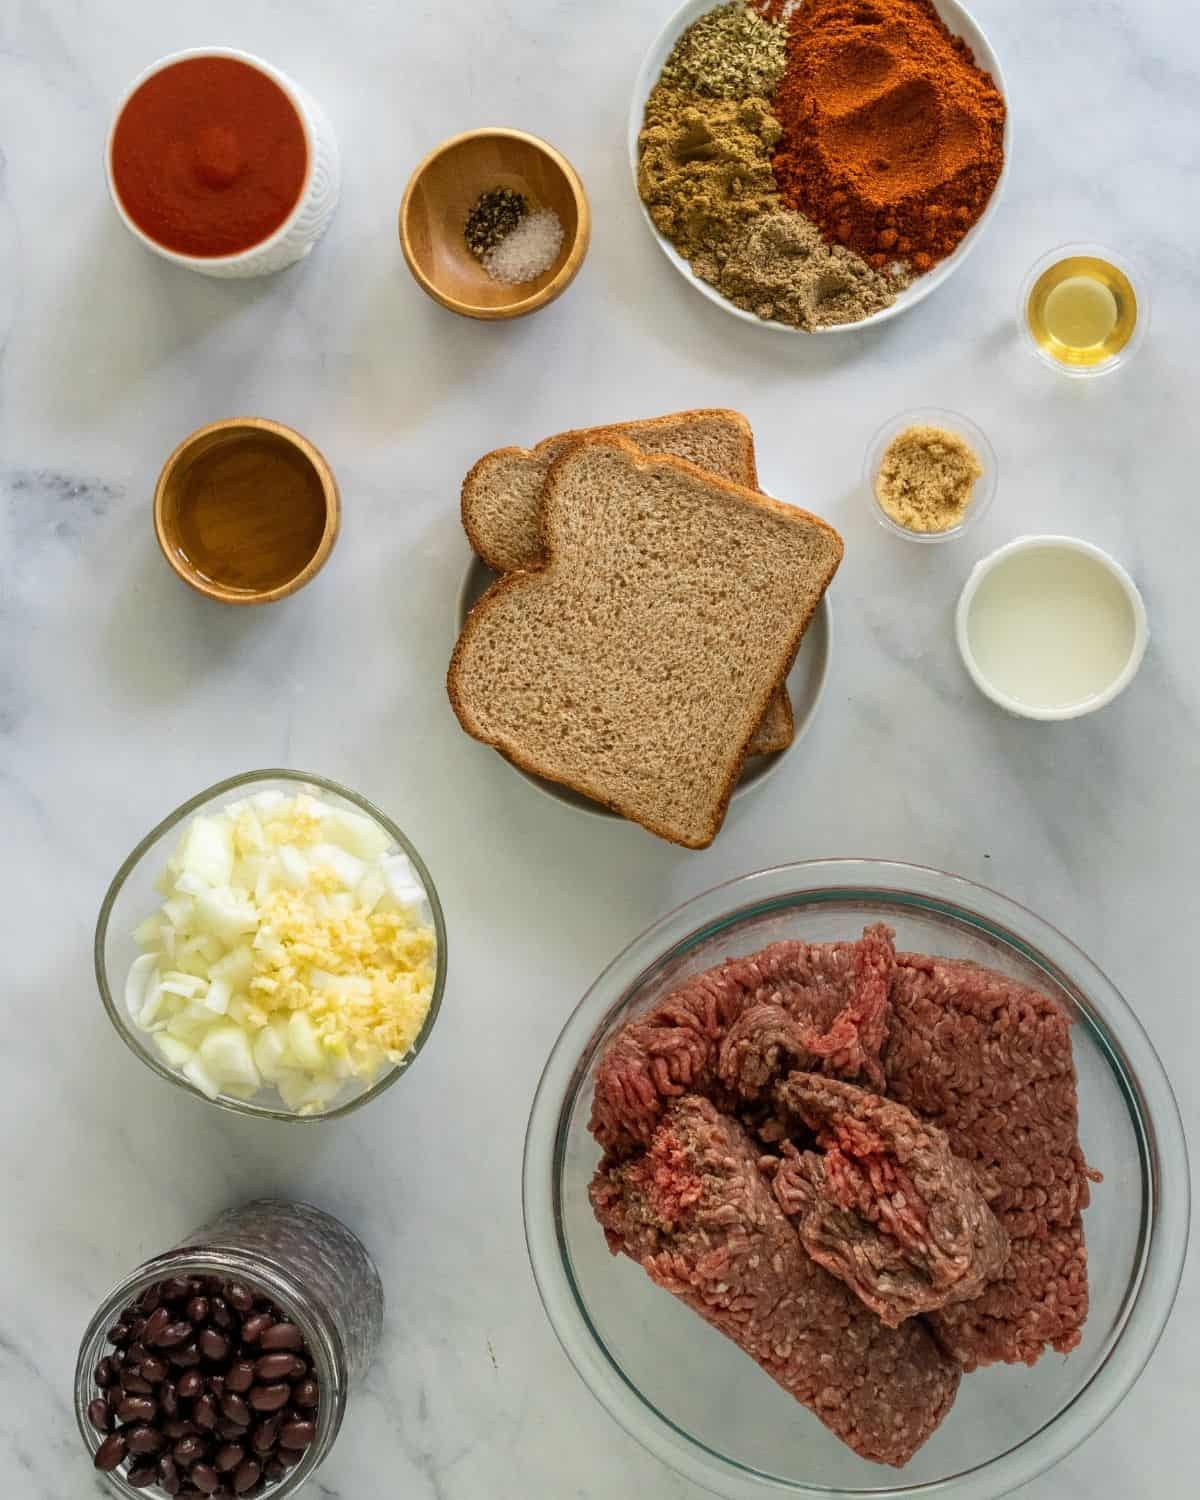 Ingredients to make beef taco meat in the crockpot